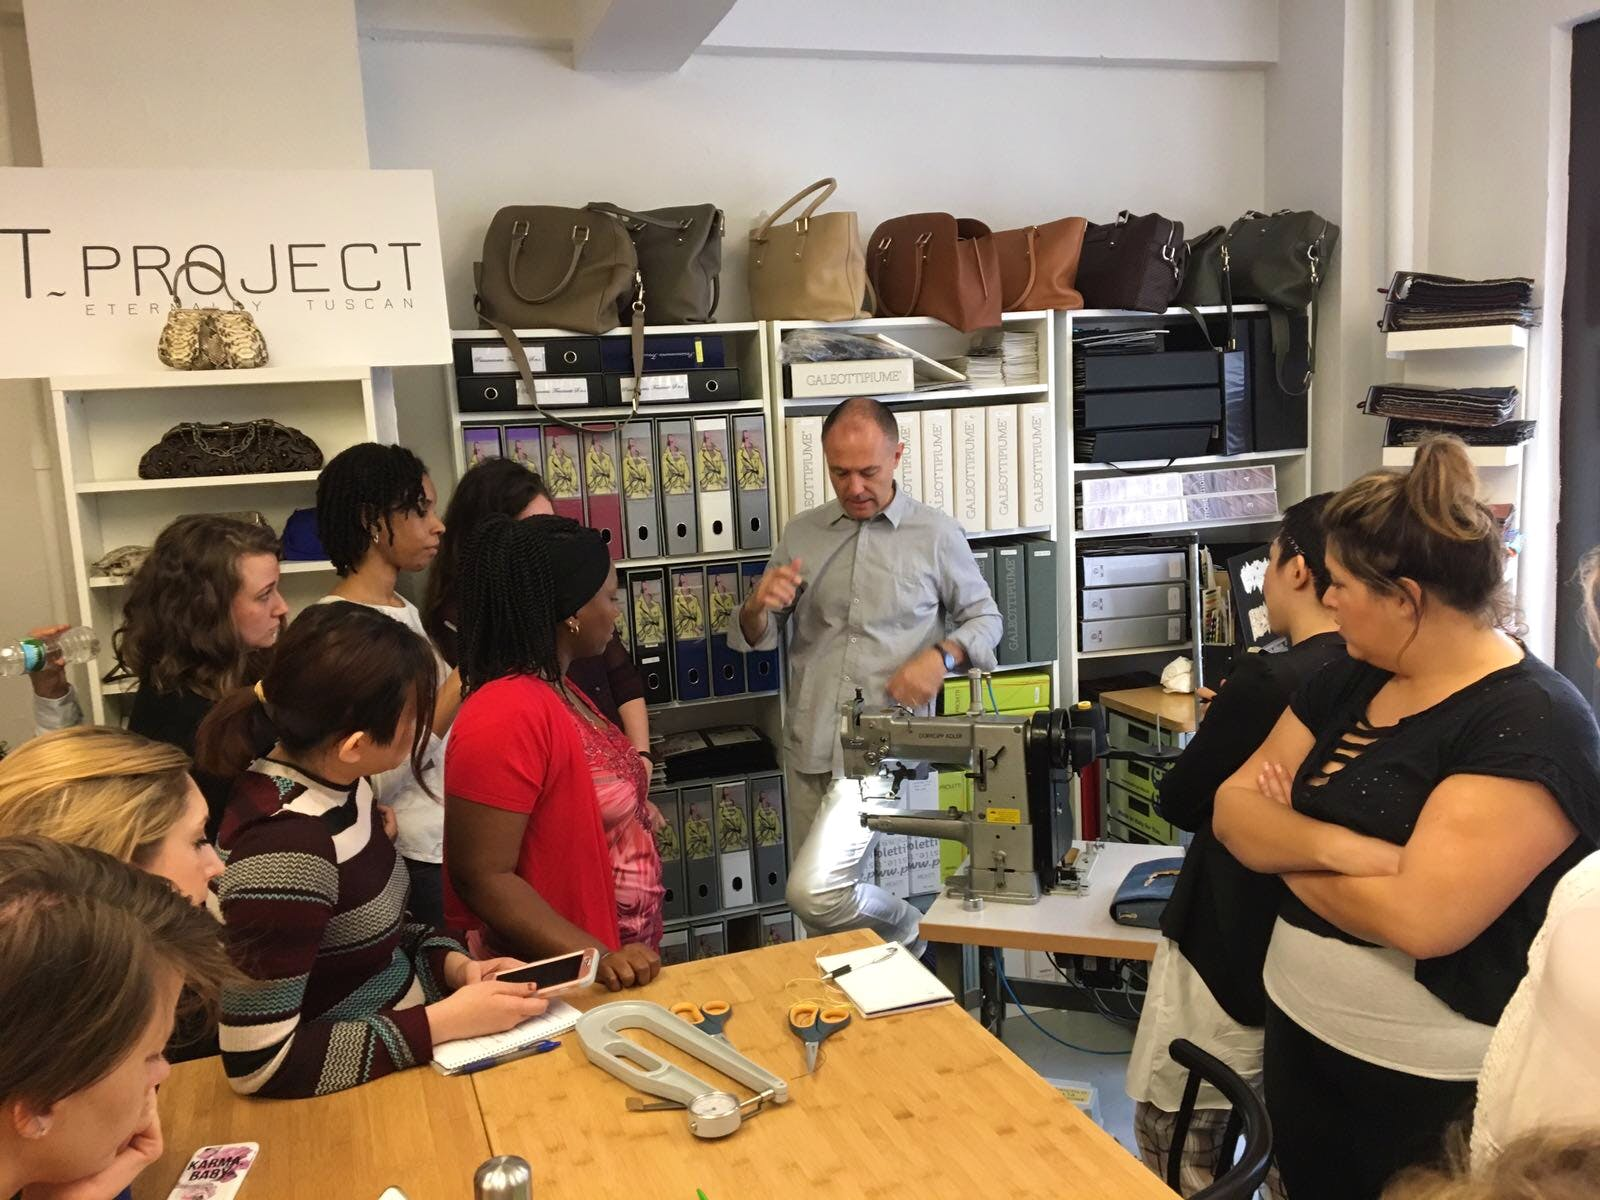 t-project handbag course